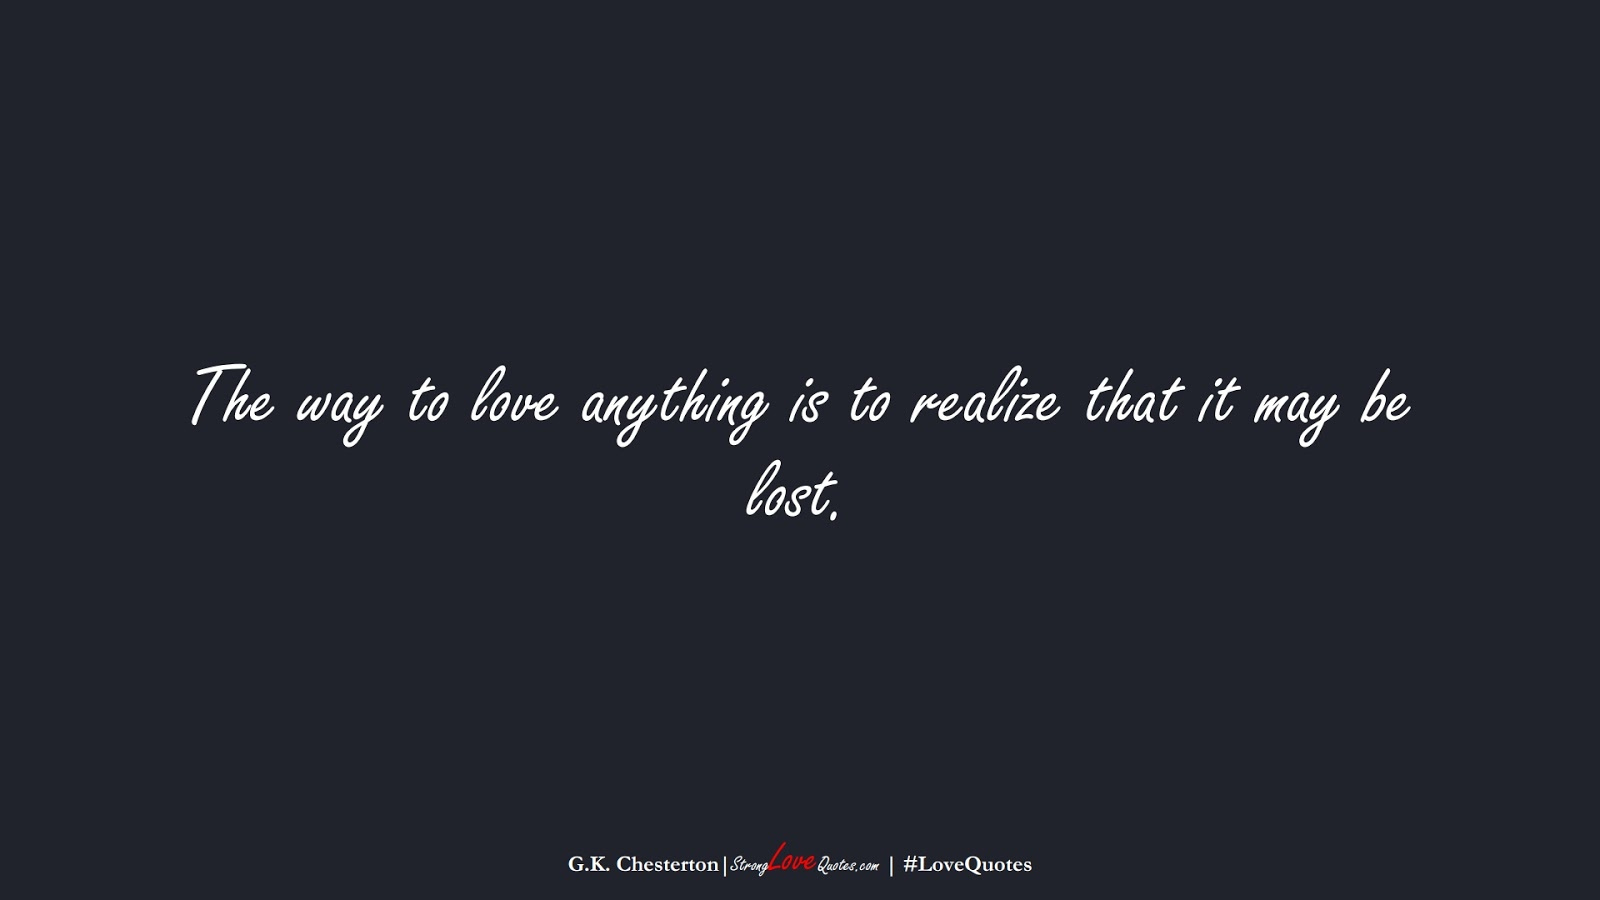 The way to love anything is to realize that it may be lost. (G.K. Chesterton);  #LoveQuotes